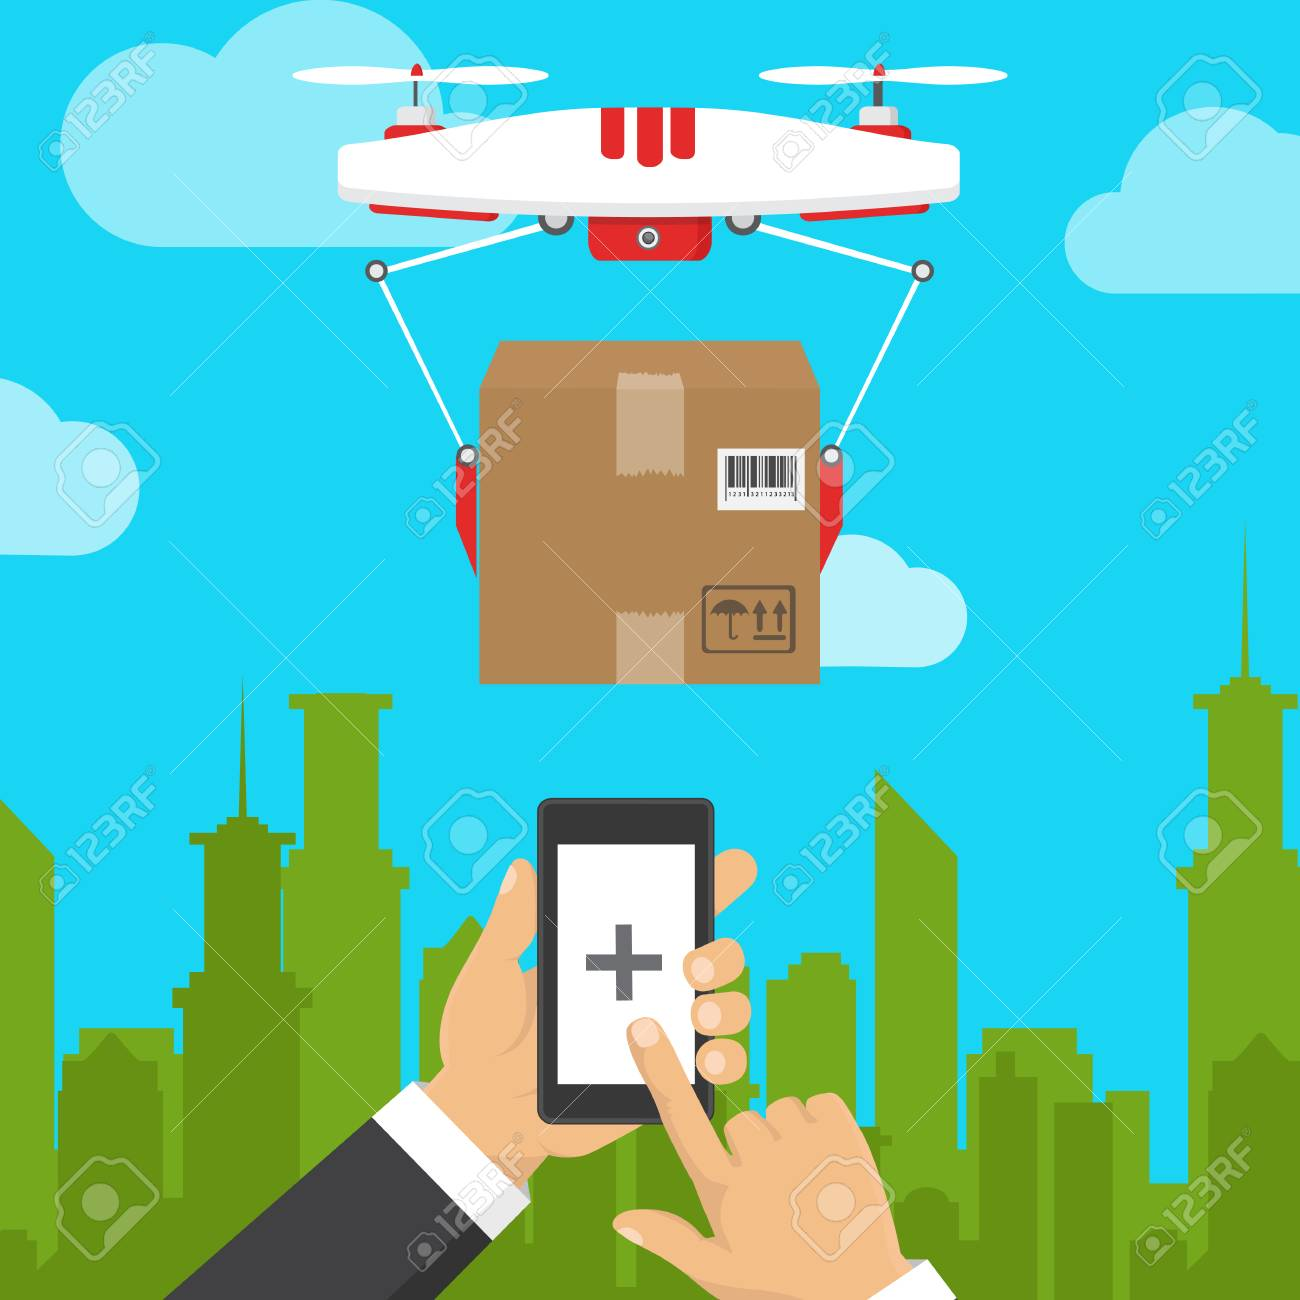 hight resolution of drone with a video camera control panel modern flying device vector illustration of